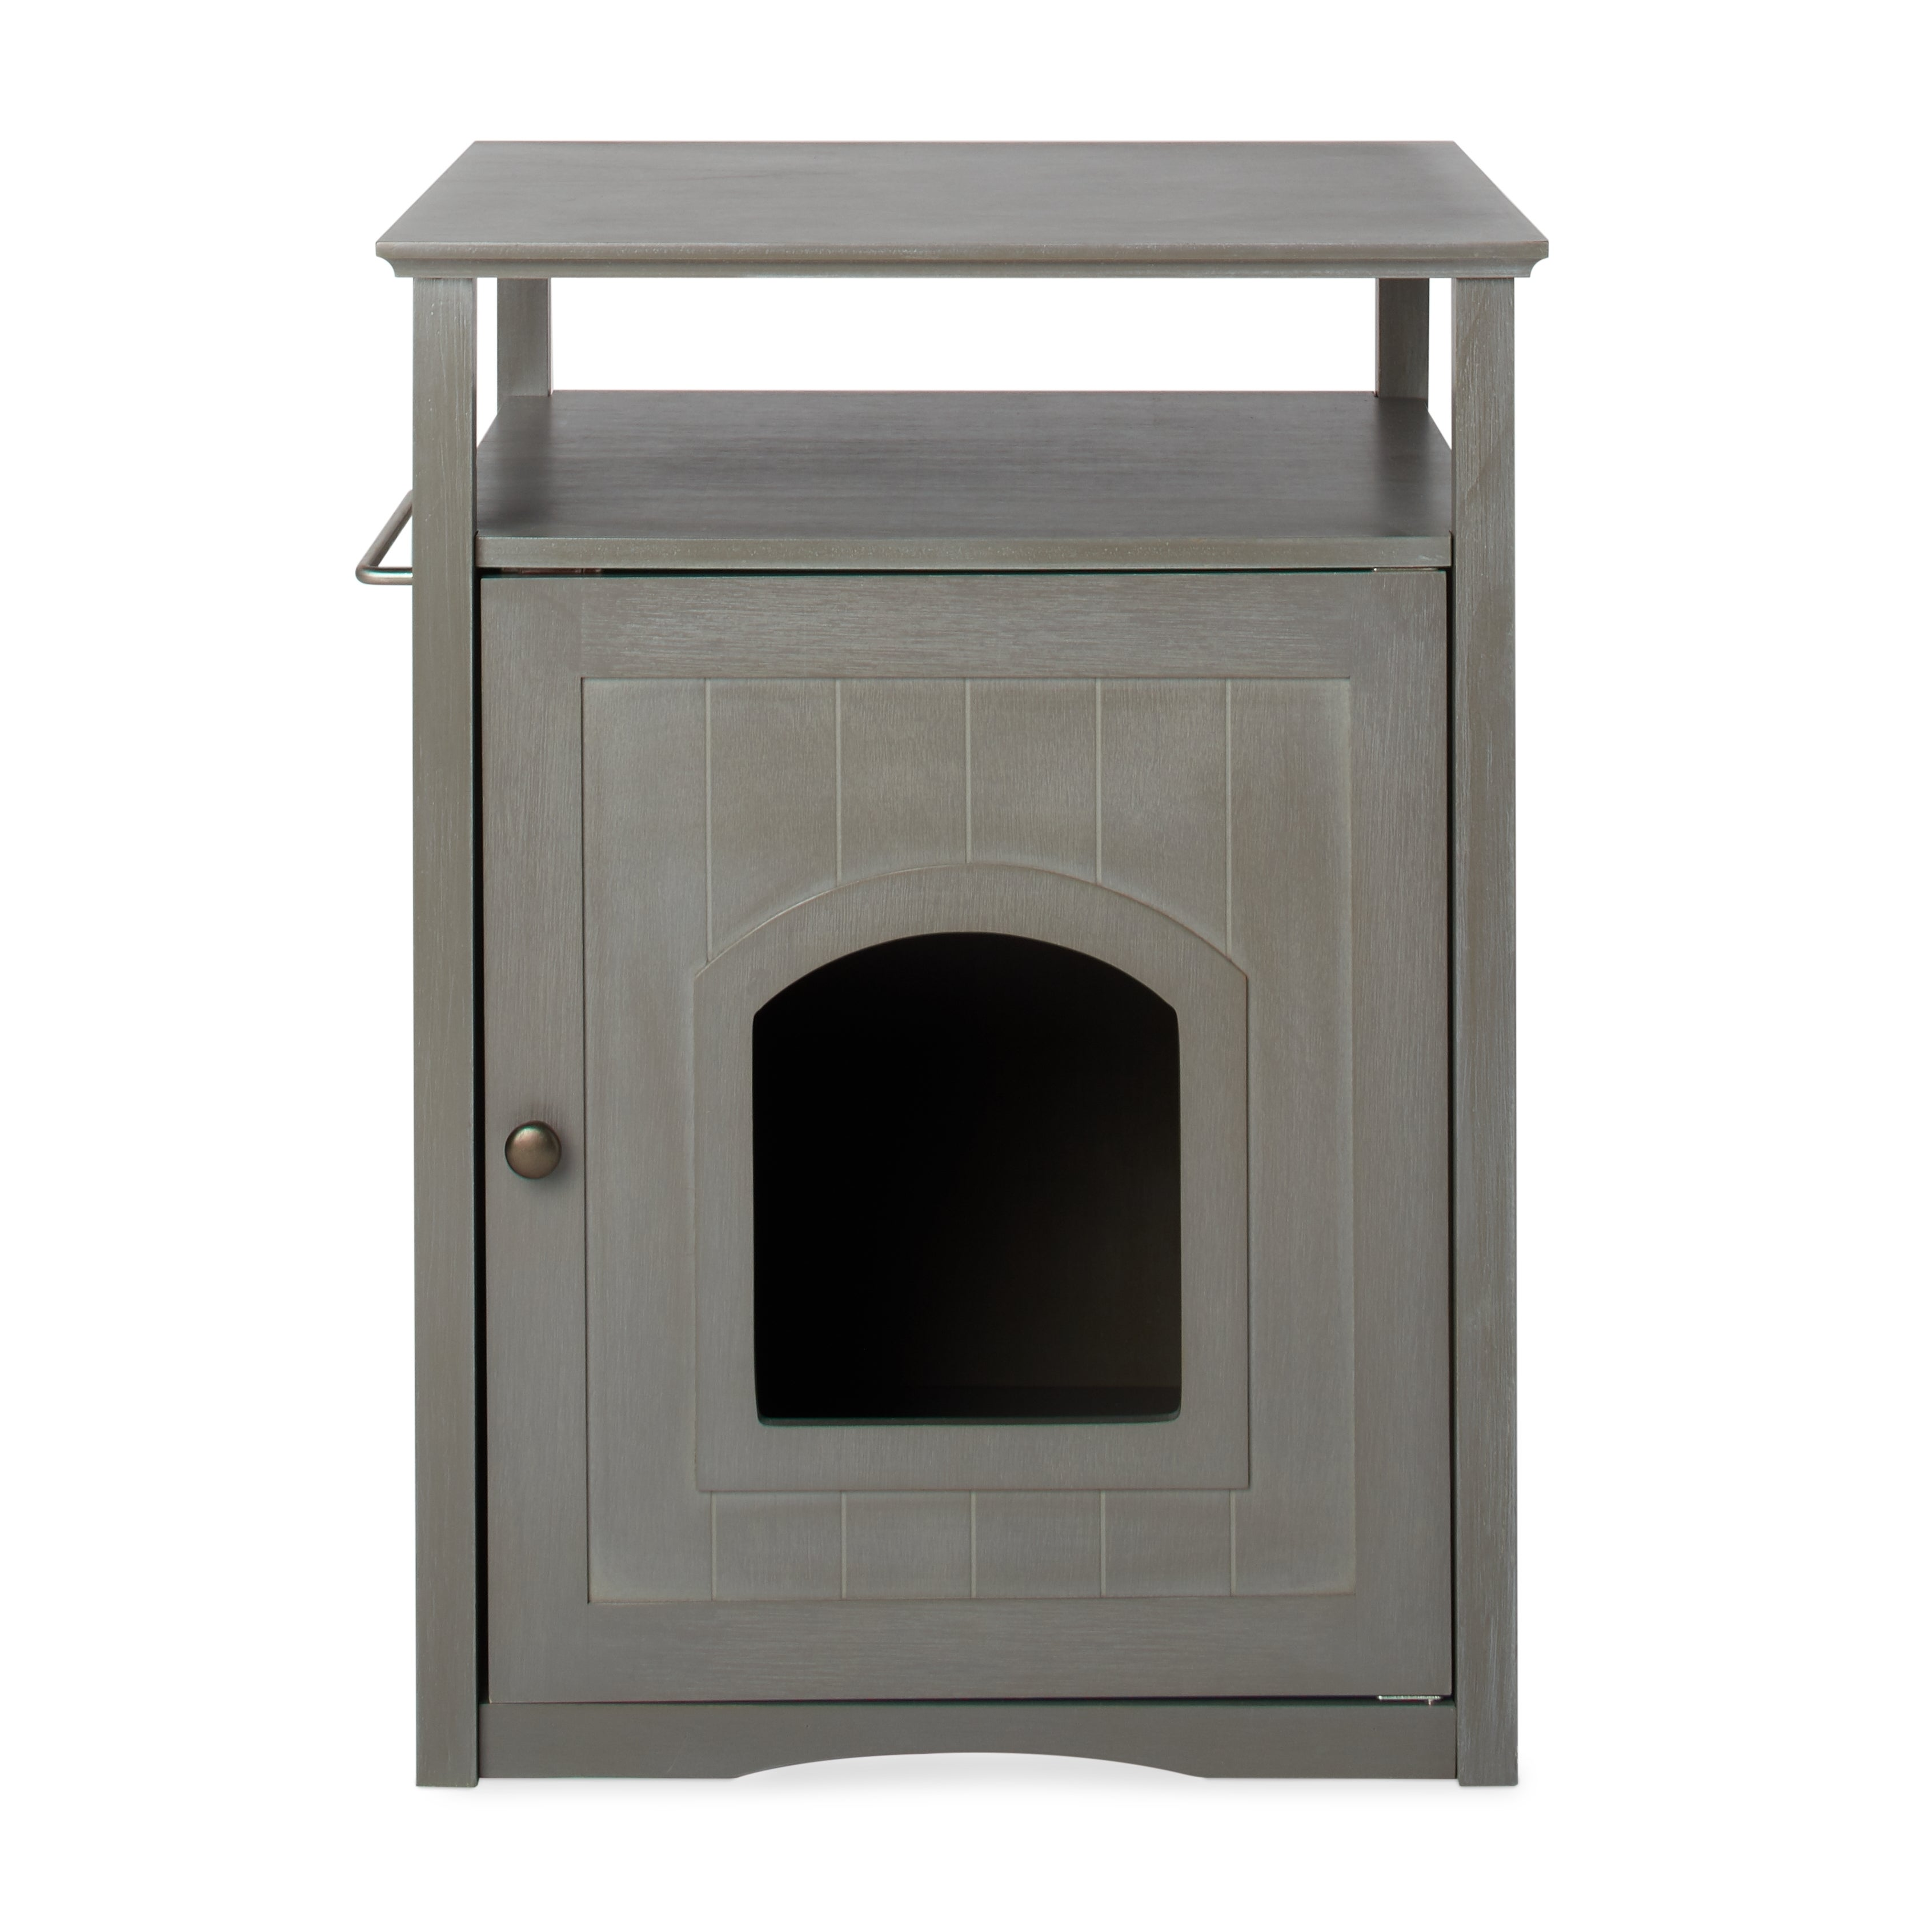 furniture to hide litter box. Merry Products Furniture Hidden Cat Litter Box Enclosure Free To Hide